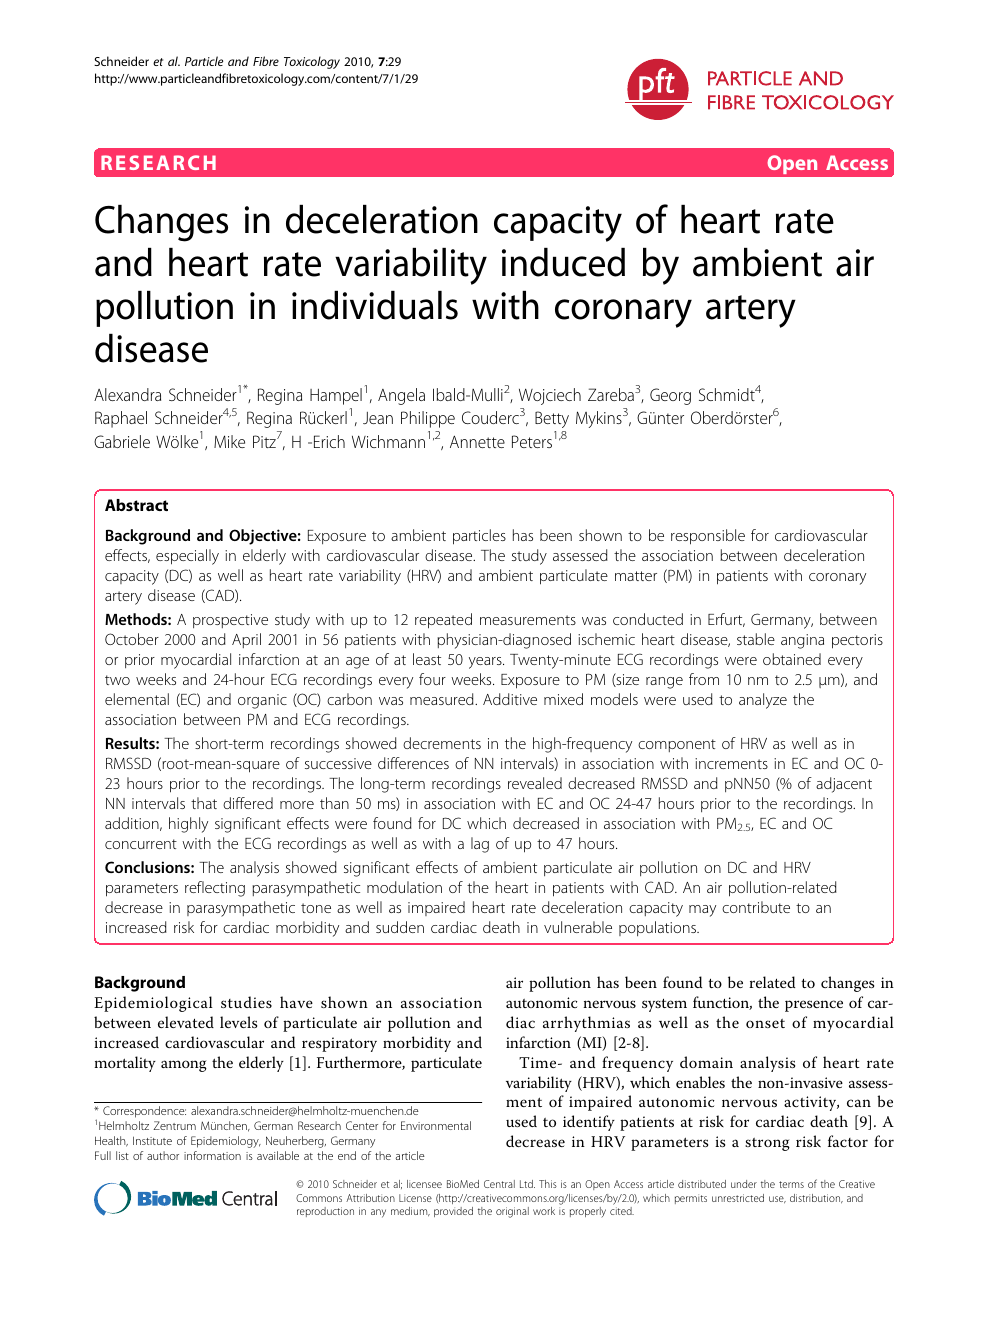 Changes in deceleration capacity of heart rate and heart